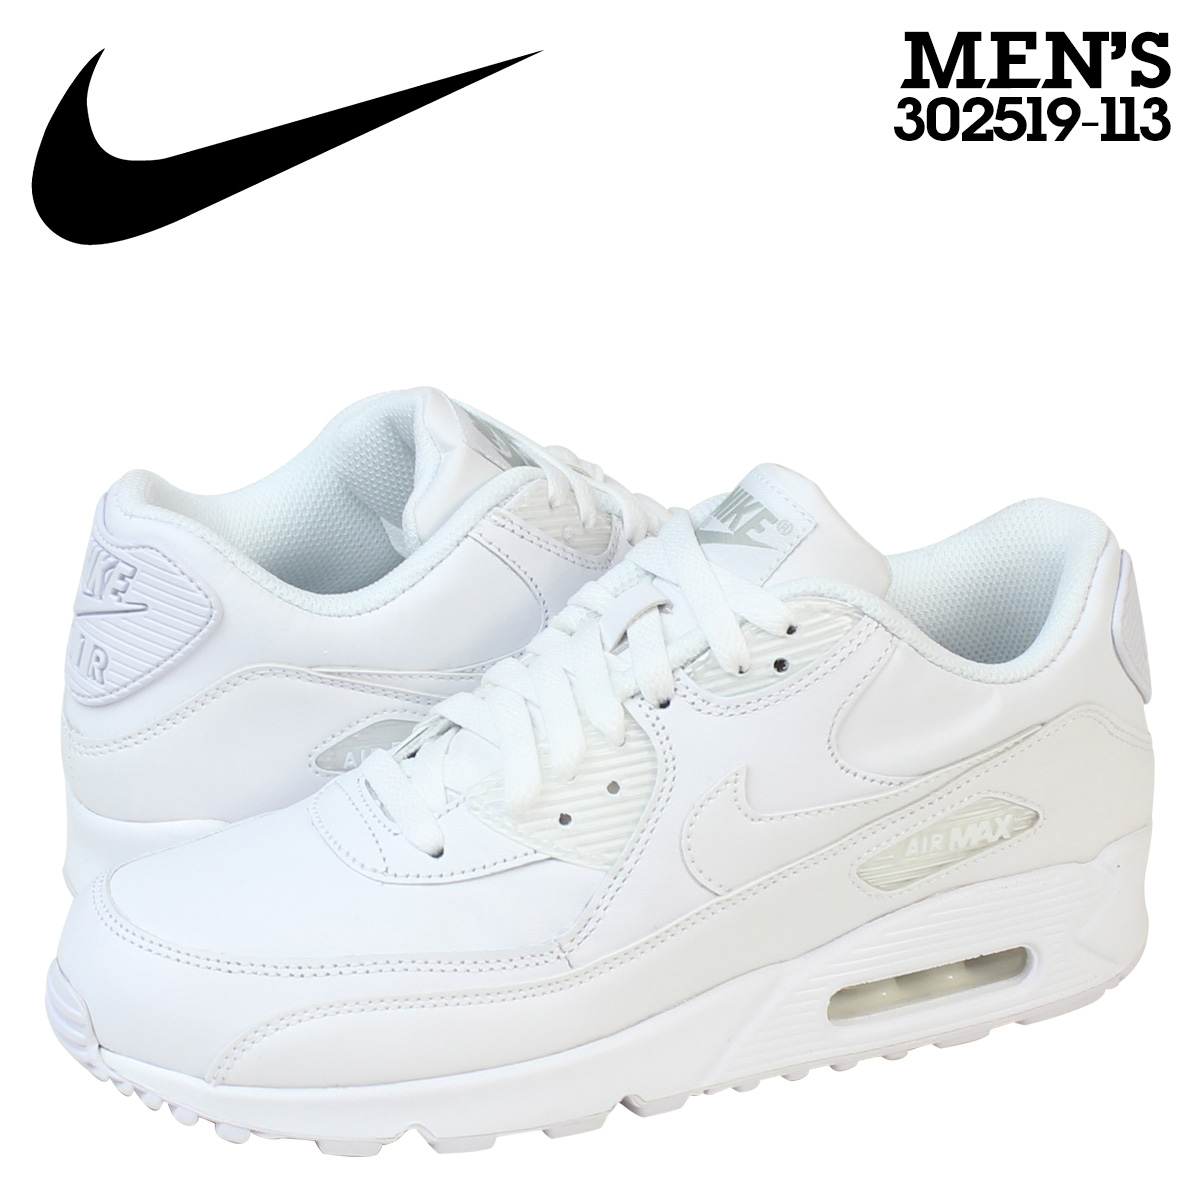 separation shoes 99716 8cf6c Nike NIKE AIR MAX 90 LEATHER sneakers Air Max 90 leather mens 302519-113  WHITE/WHITE white [10 / 25 new in stock] [regular]